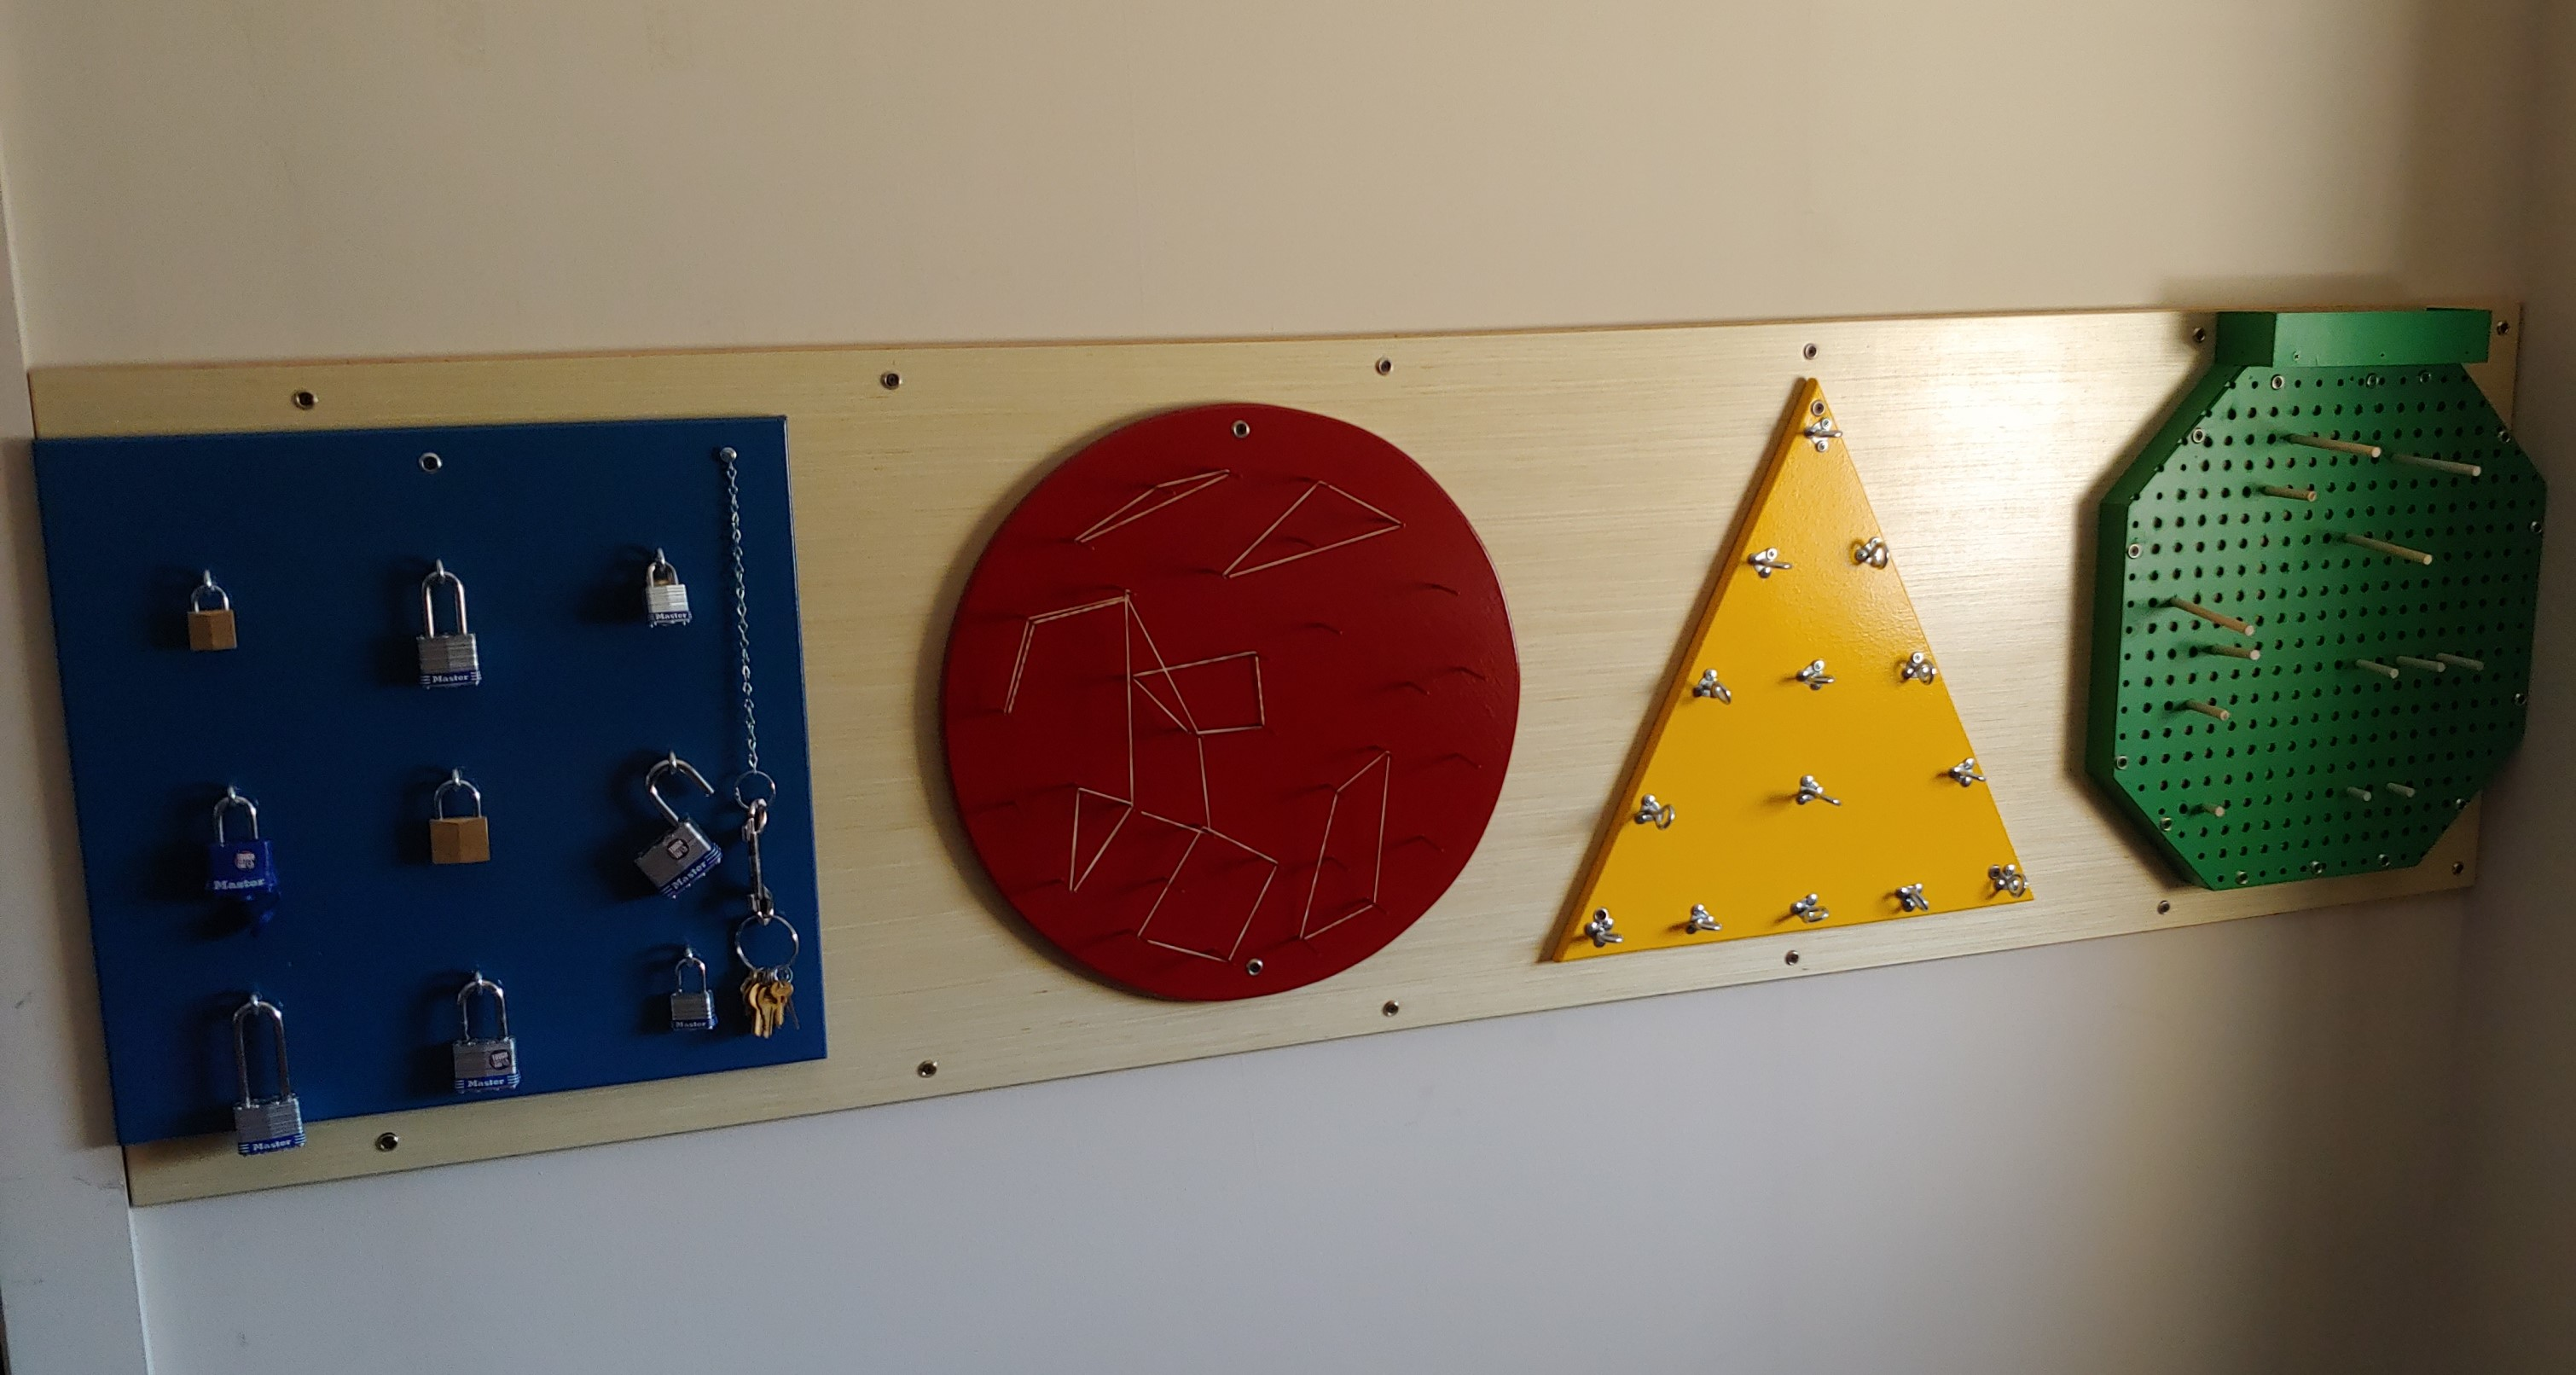 Busy Wall: 4 shapes affixed to the wall, about 1 foot by 1 foot large, each containing an activity.  A blue square holds 9 padlocks with keys, a red circle has nails where rubber bands can be placed in different shapes, a yellow triangle holds large screws that can be moved in and out, and a green hexagon has holes and pegs to rearrange.